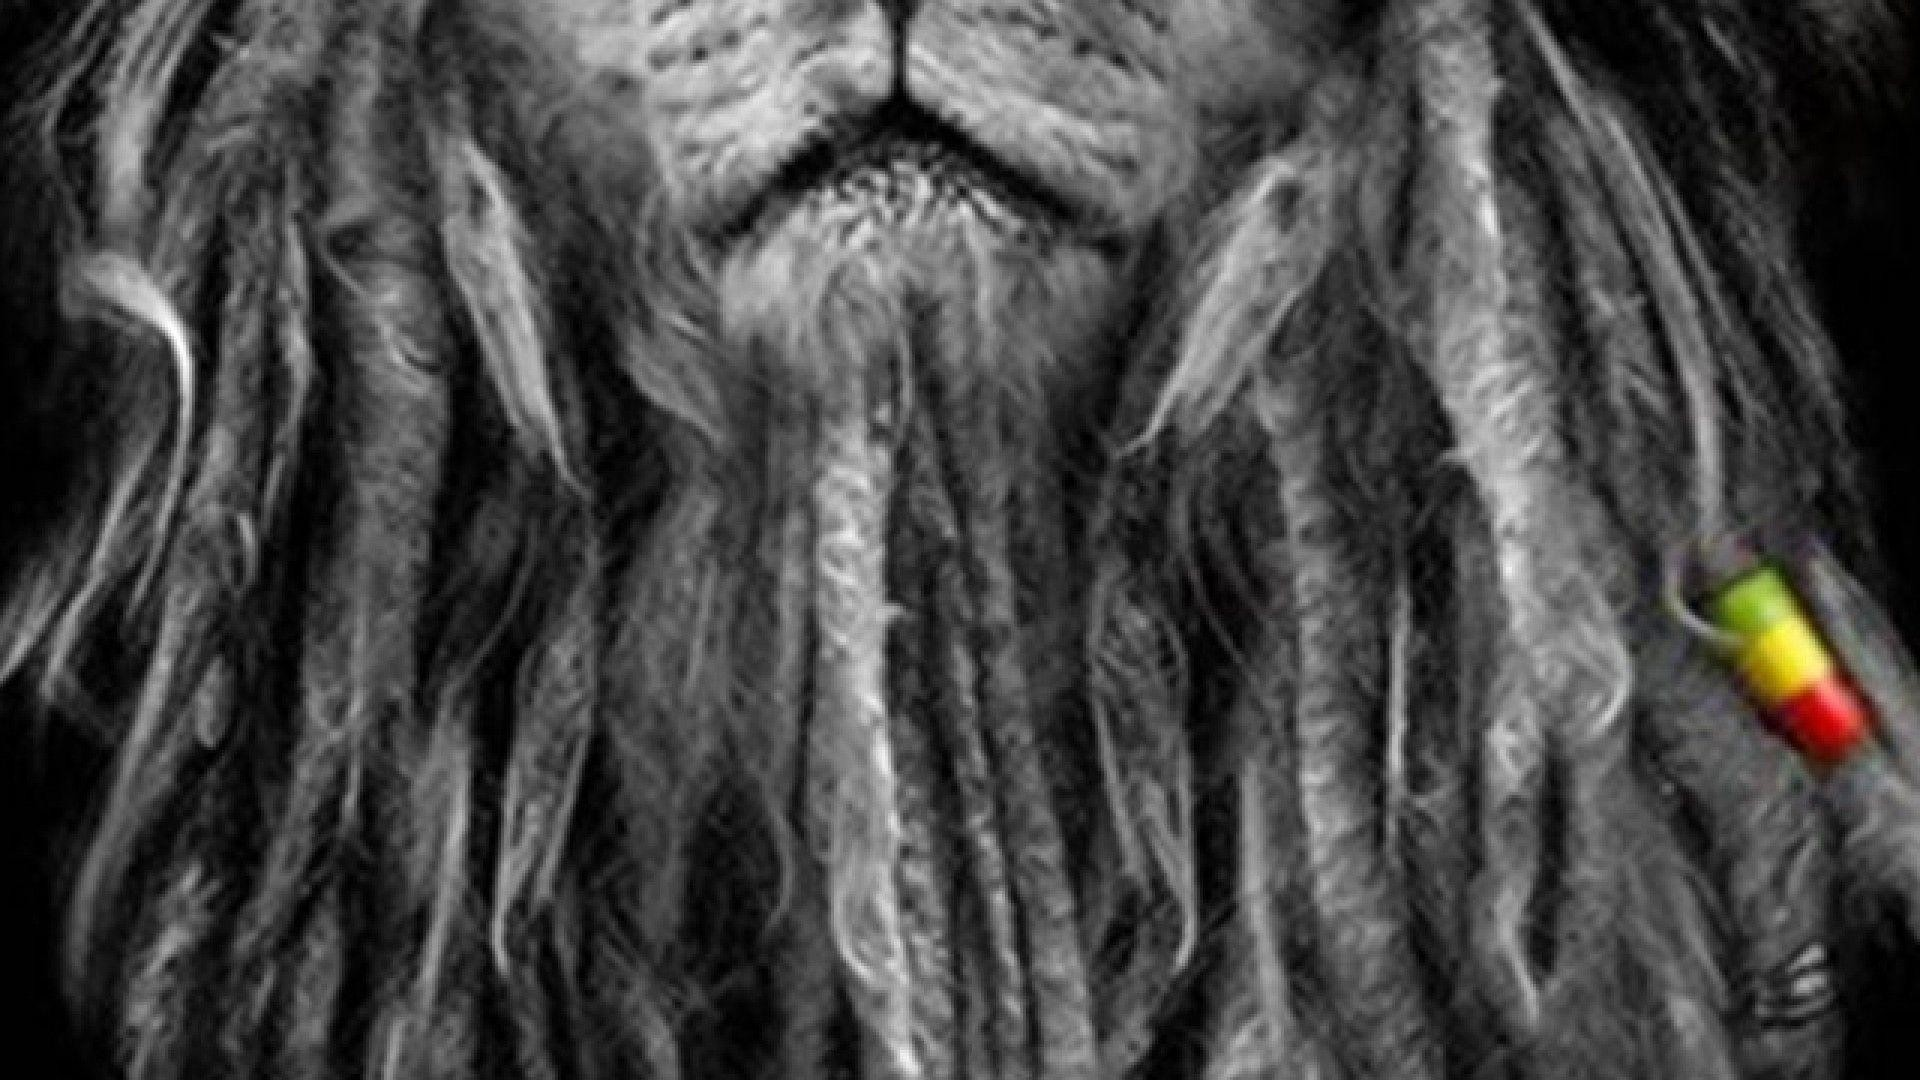 1920x1080 Wallpapers For Rasta Lion Iphone 5 Wallpaper